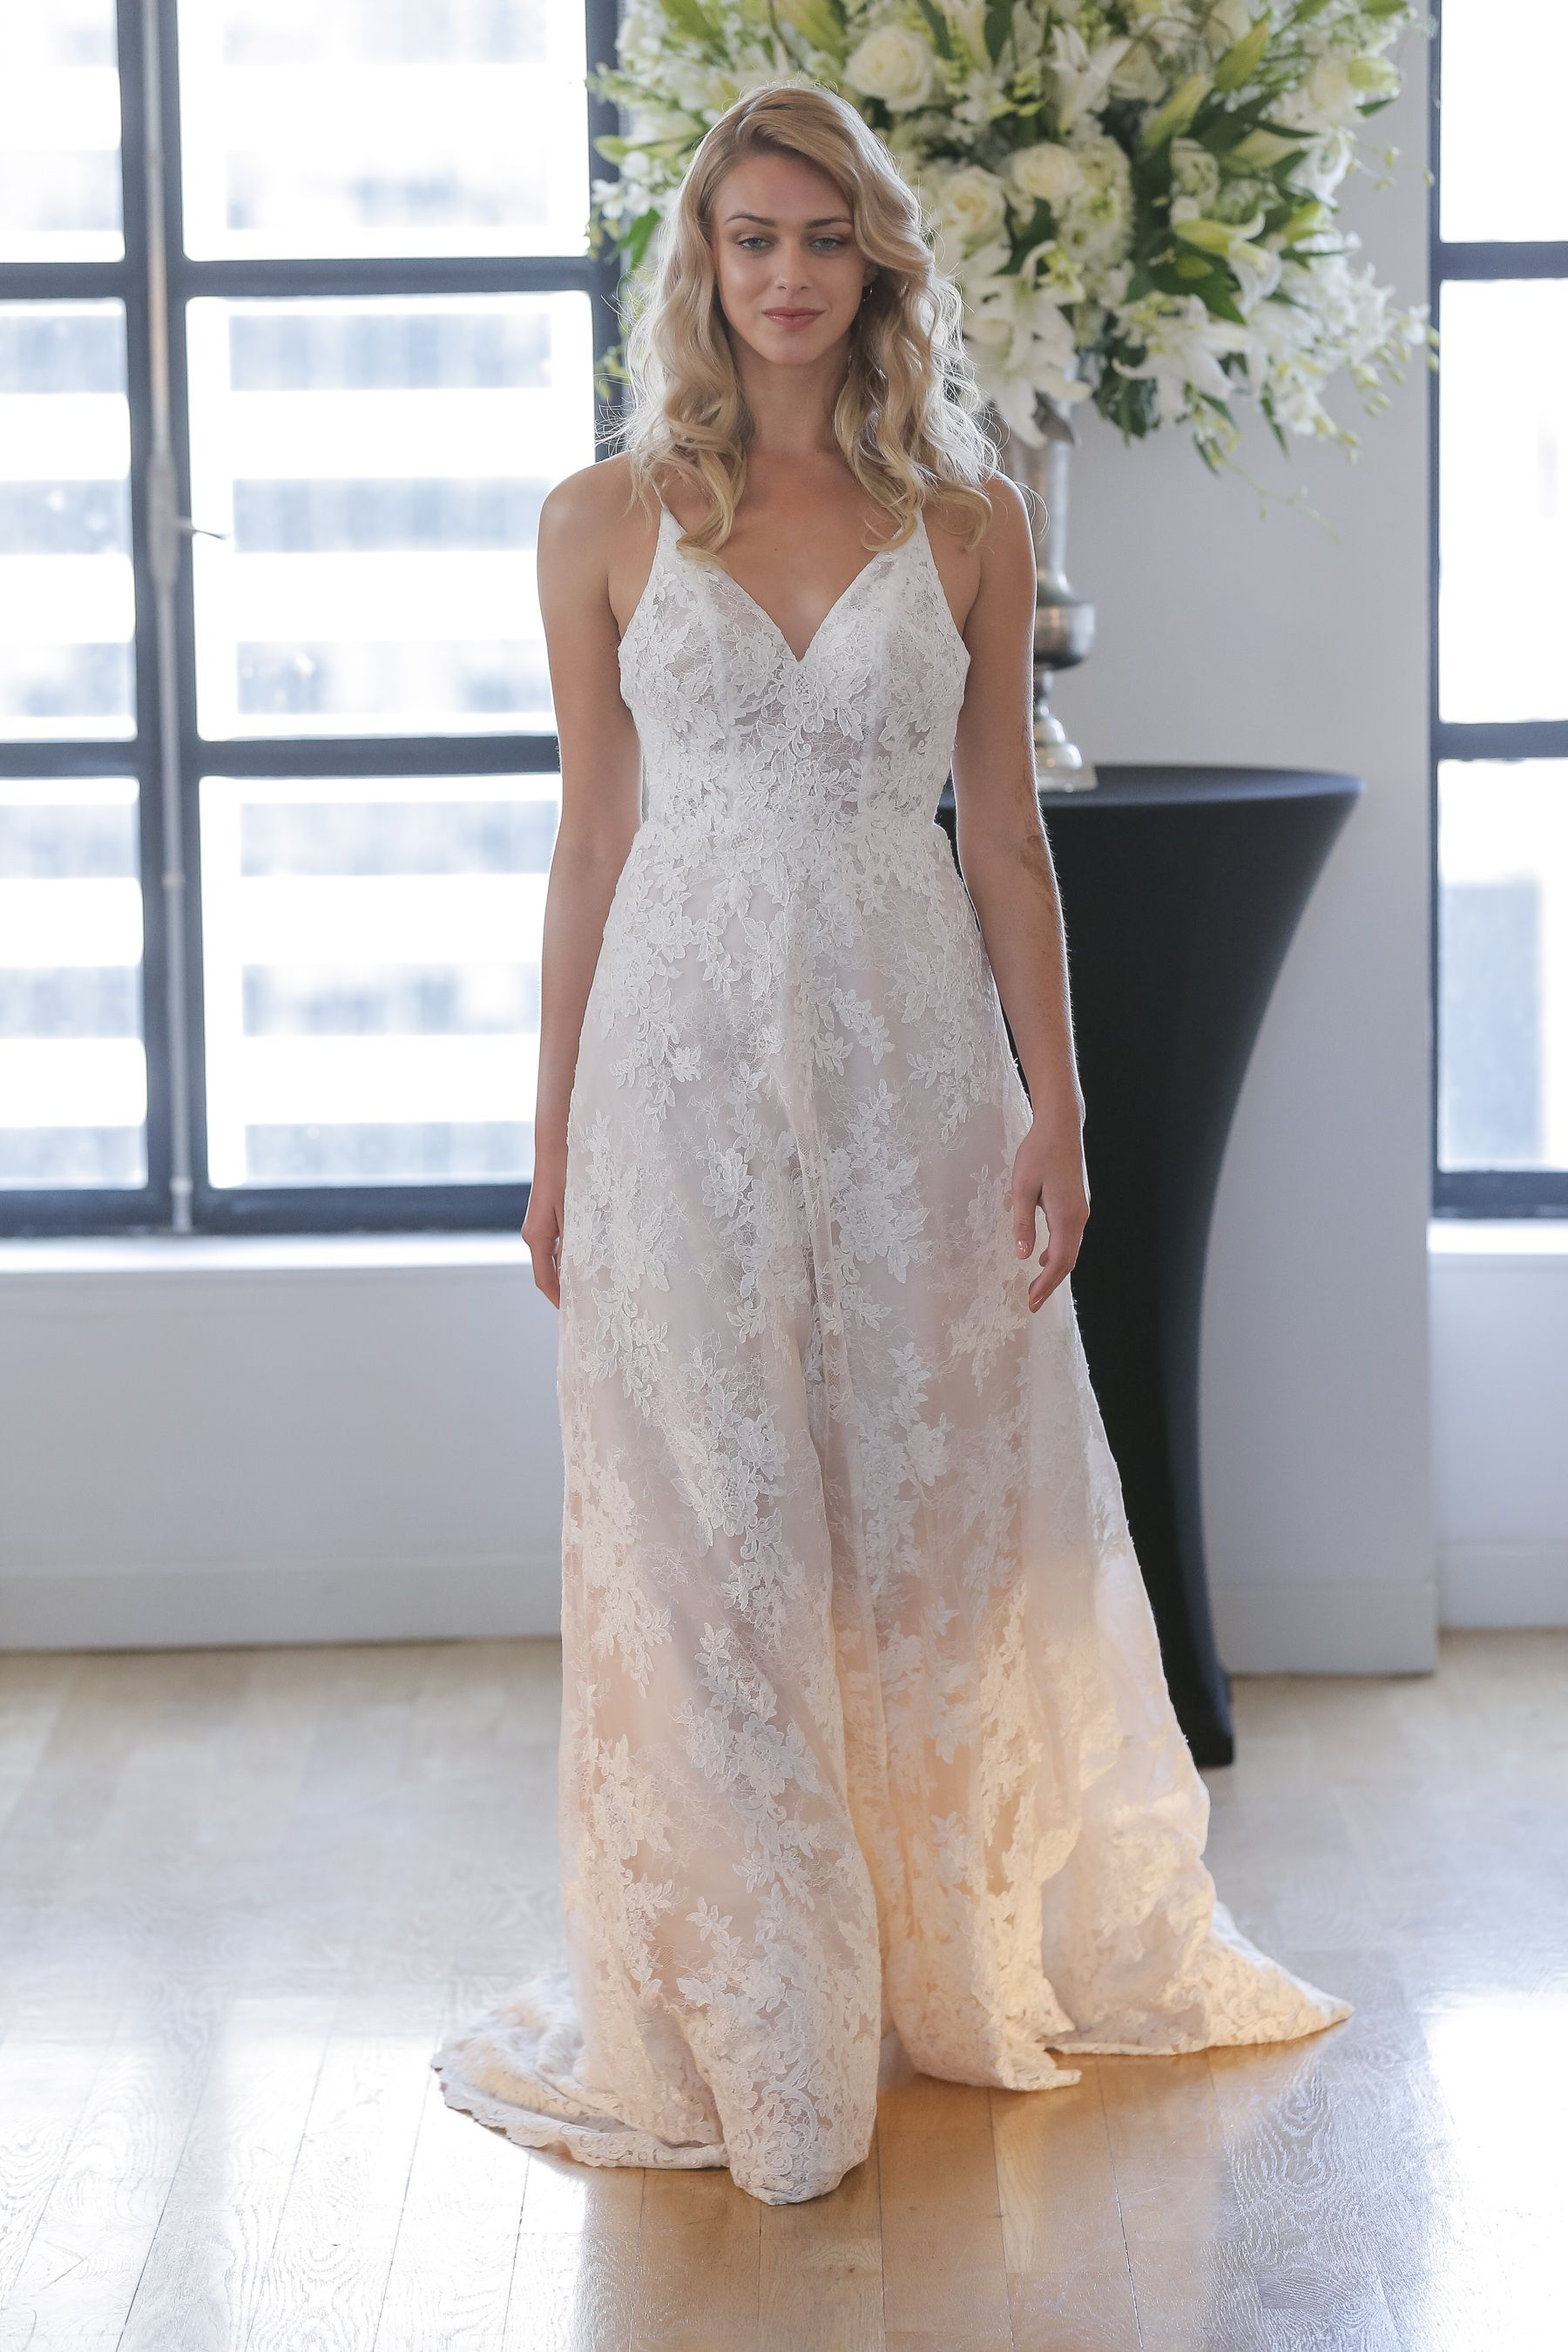 8a419ff50 MAIA Kelly Faetanini Fall 2018 wedding dress | Chantilly Lace and  Embroidery V-Neck Ball Gown with Illusion Lace Backline